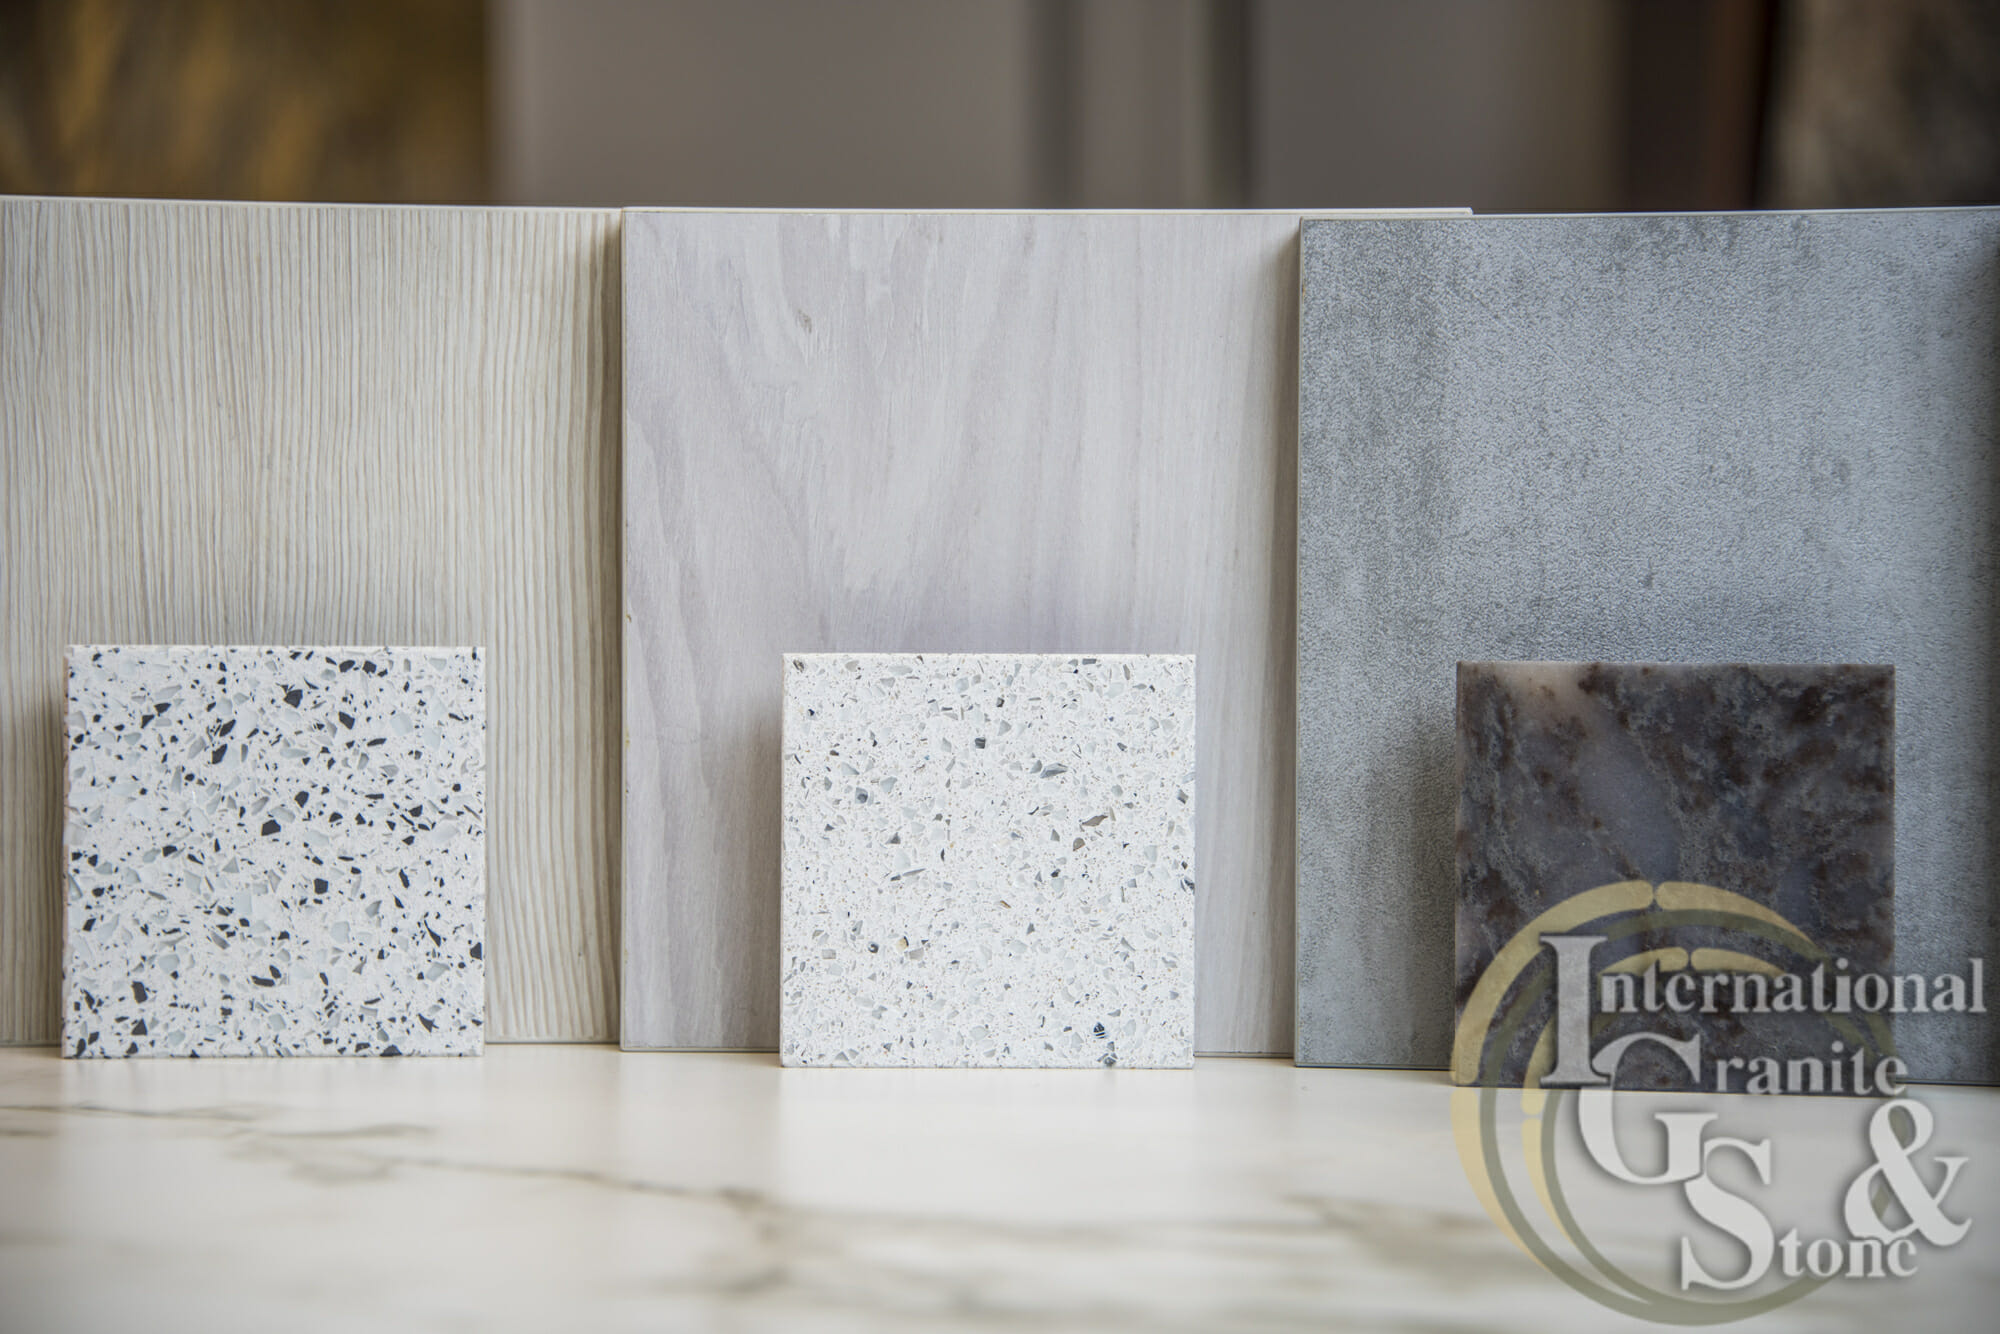 on pinterest in quartz images riverview colors cambria internationalgraniteandstone best kitchen countertop tampa summerhill countertops